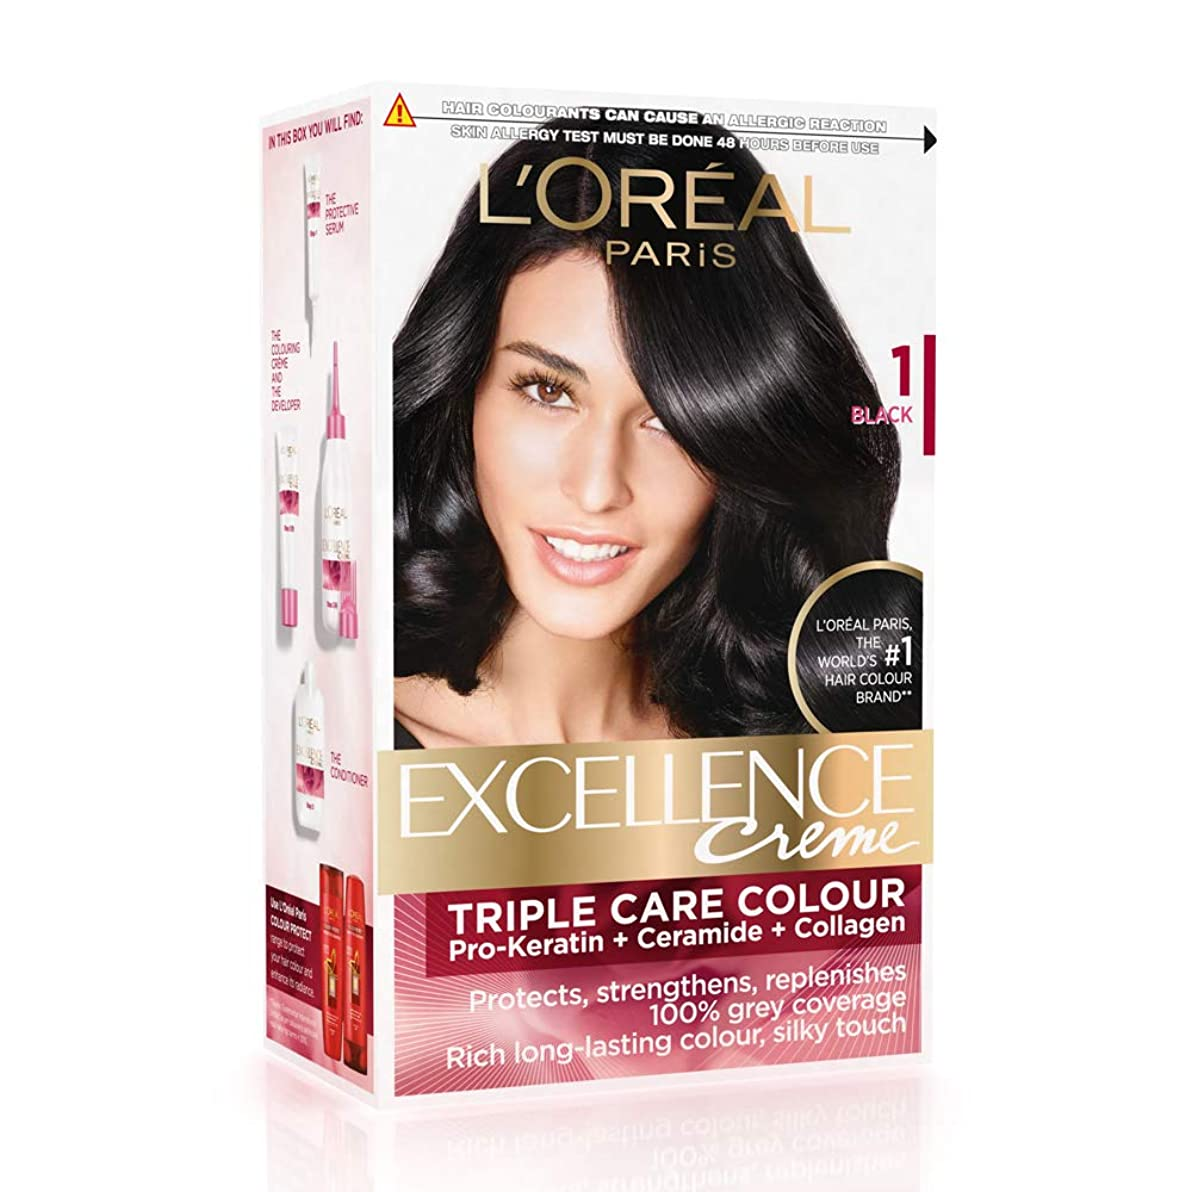 アラーム論理ギャングスターL'Oreal Paris Excellence Creme Hair Color, 1 Black, 72ml+100g